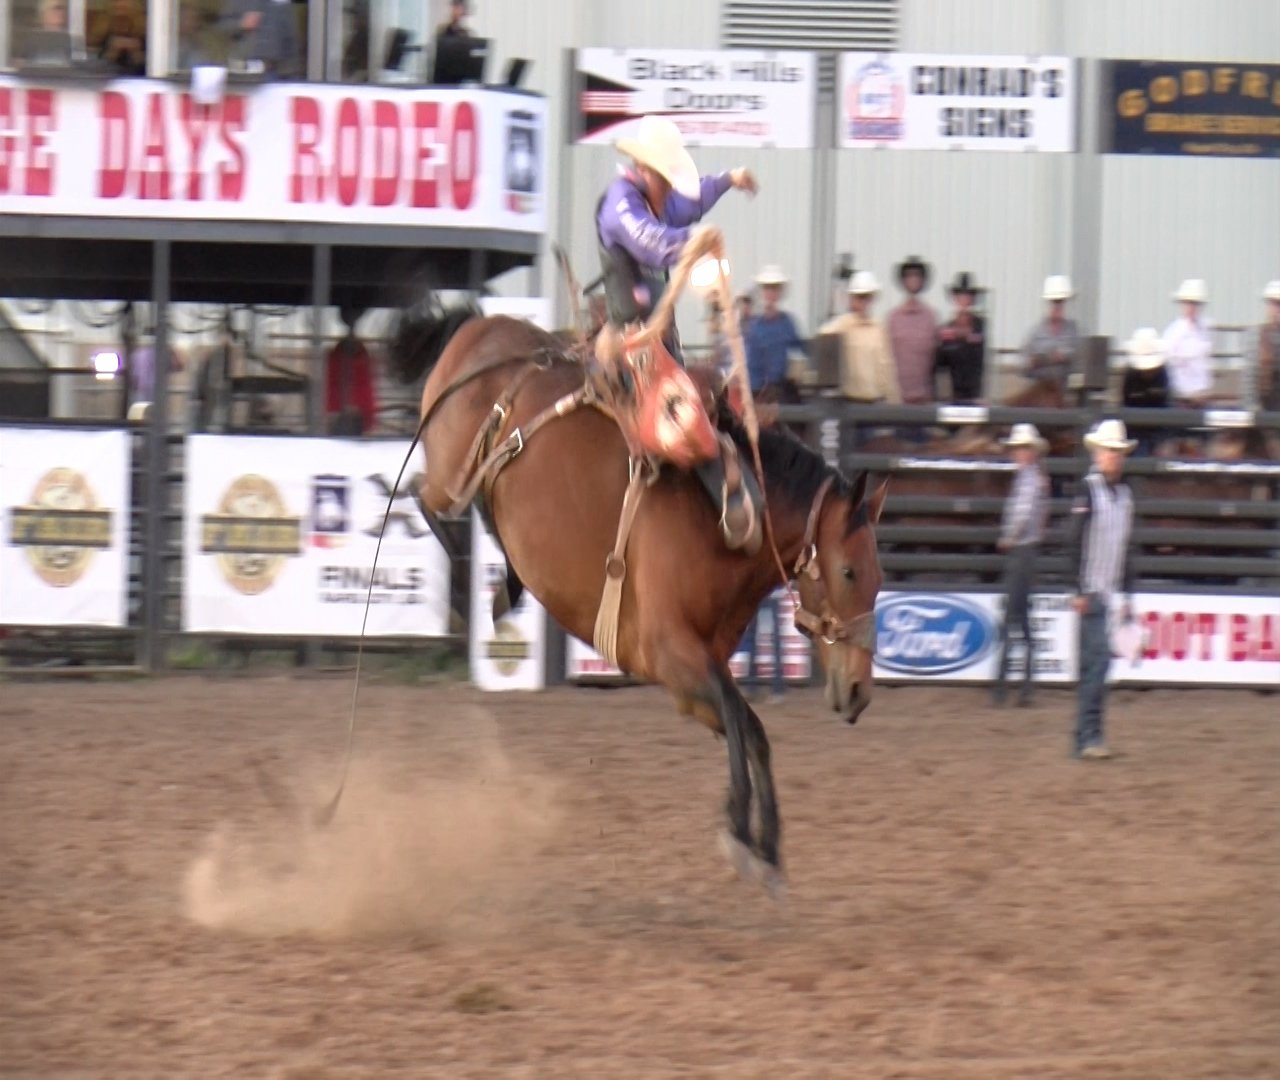 Sundell Cress Crowned Co Champions At Xtreme Broncs